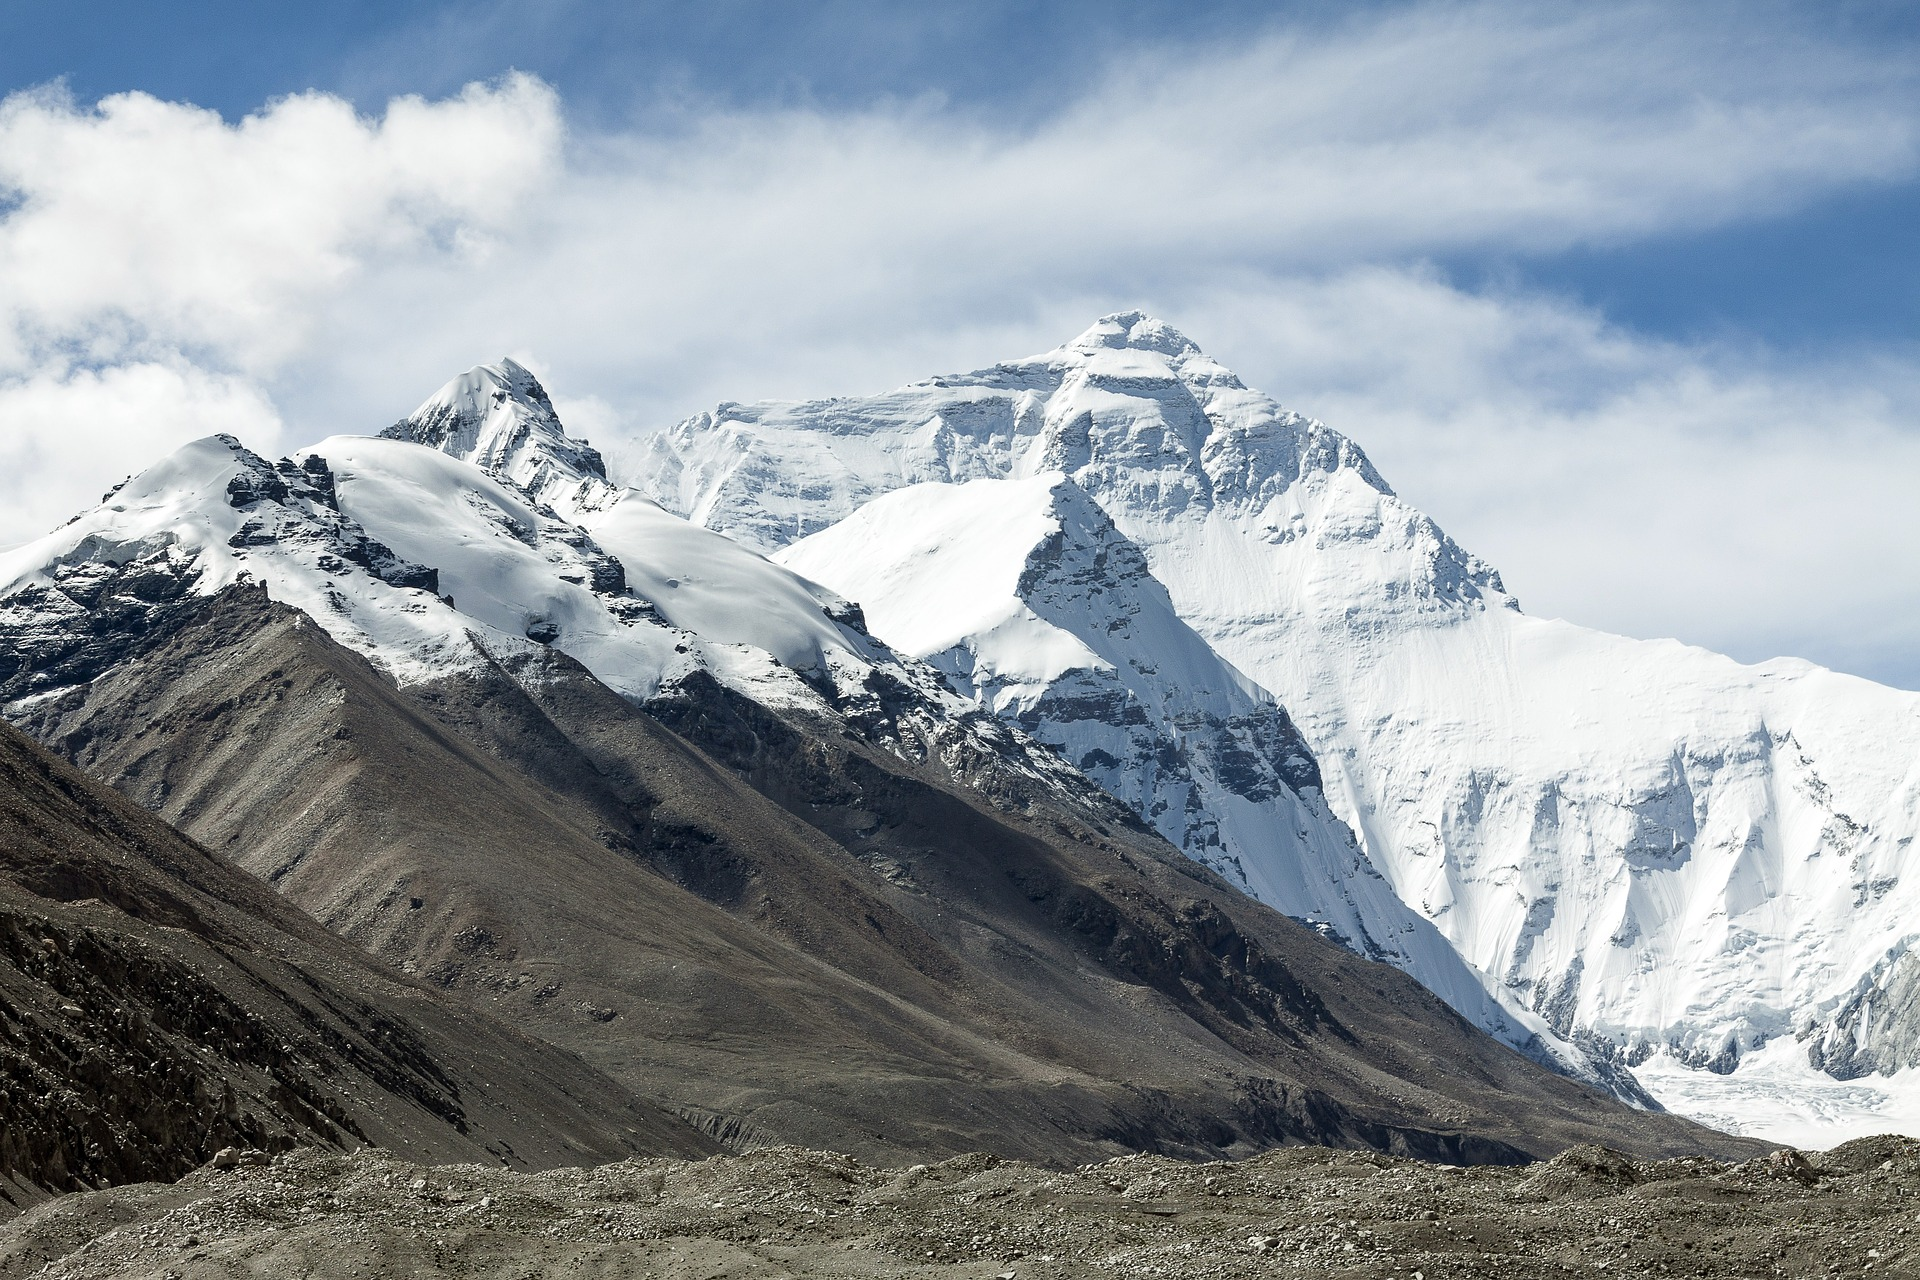 Mt. Everest death toll rises to 11